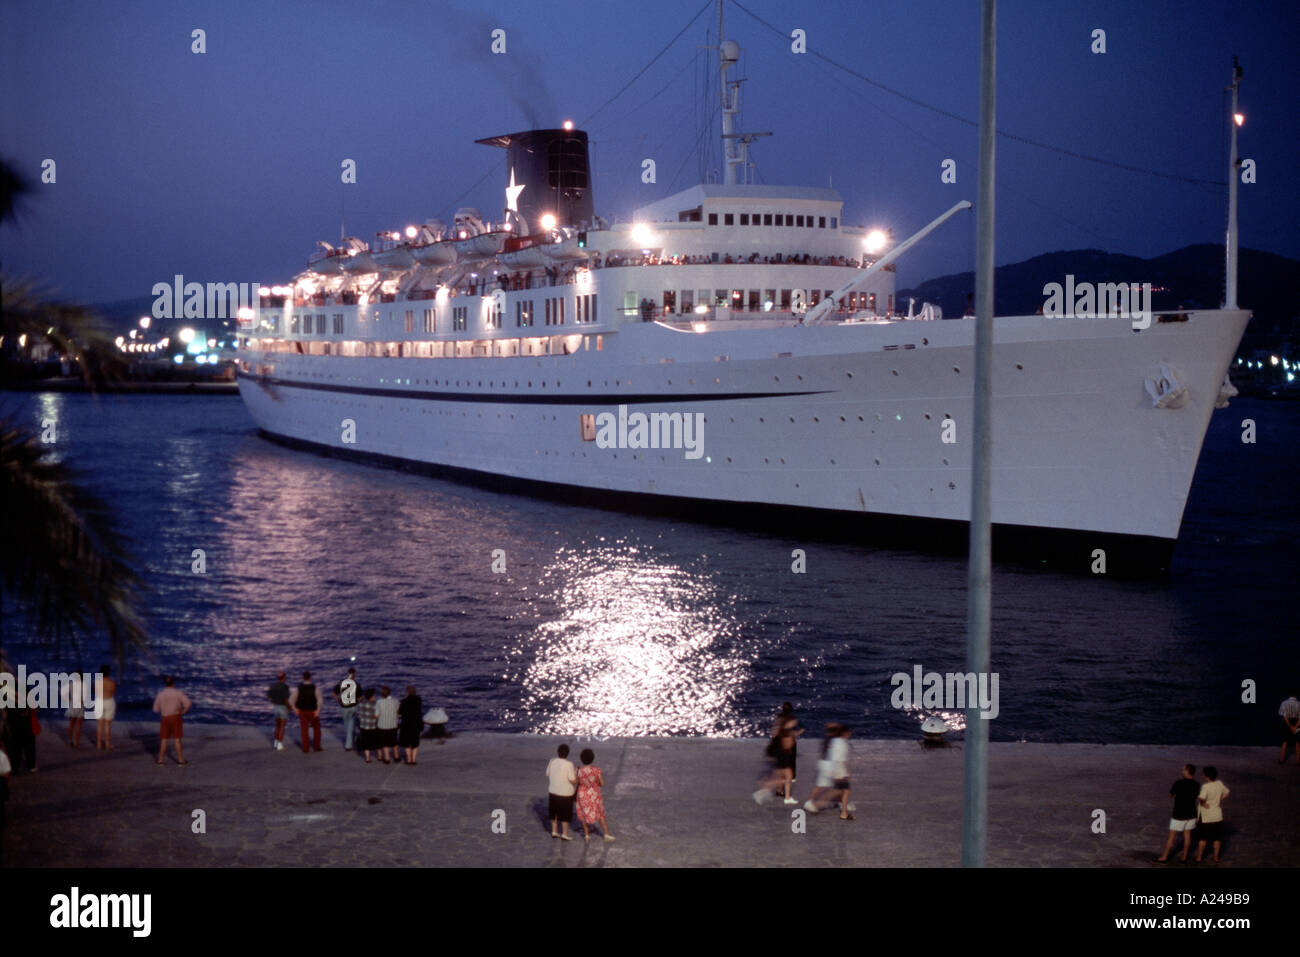 Ibiza Spain Cruise Ship In Port At Night Ocean Liner At Dock Stock Photo Royalty Free Image